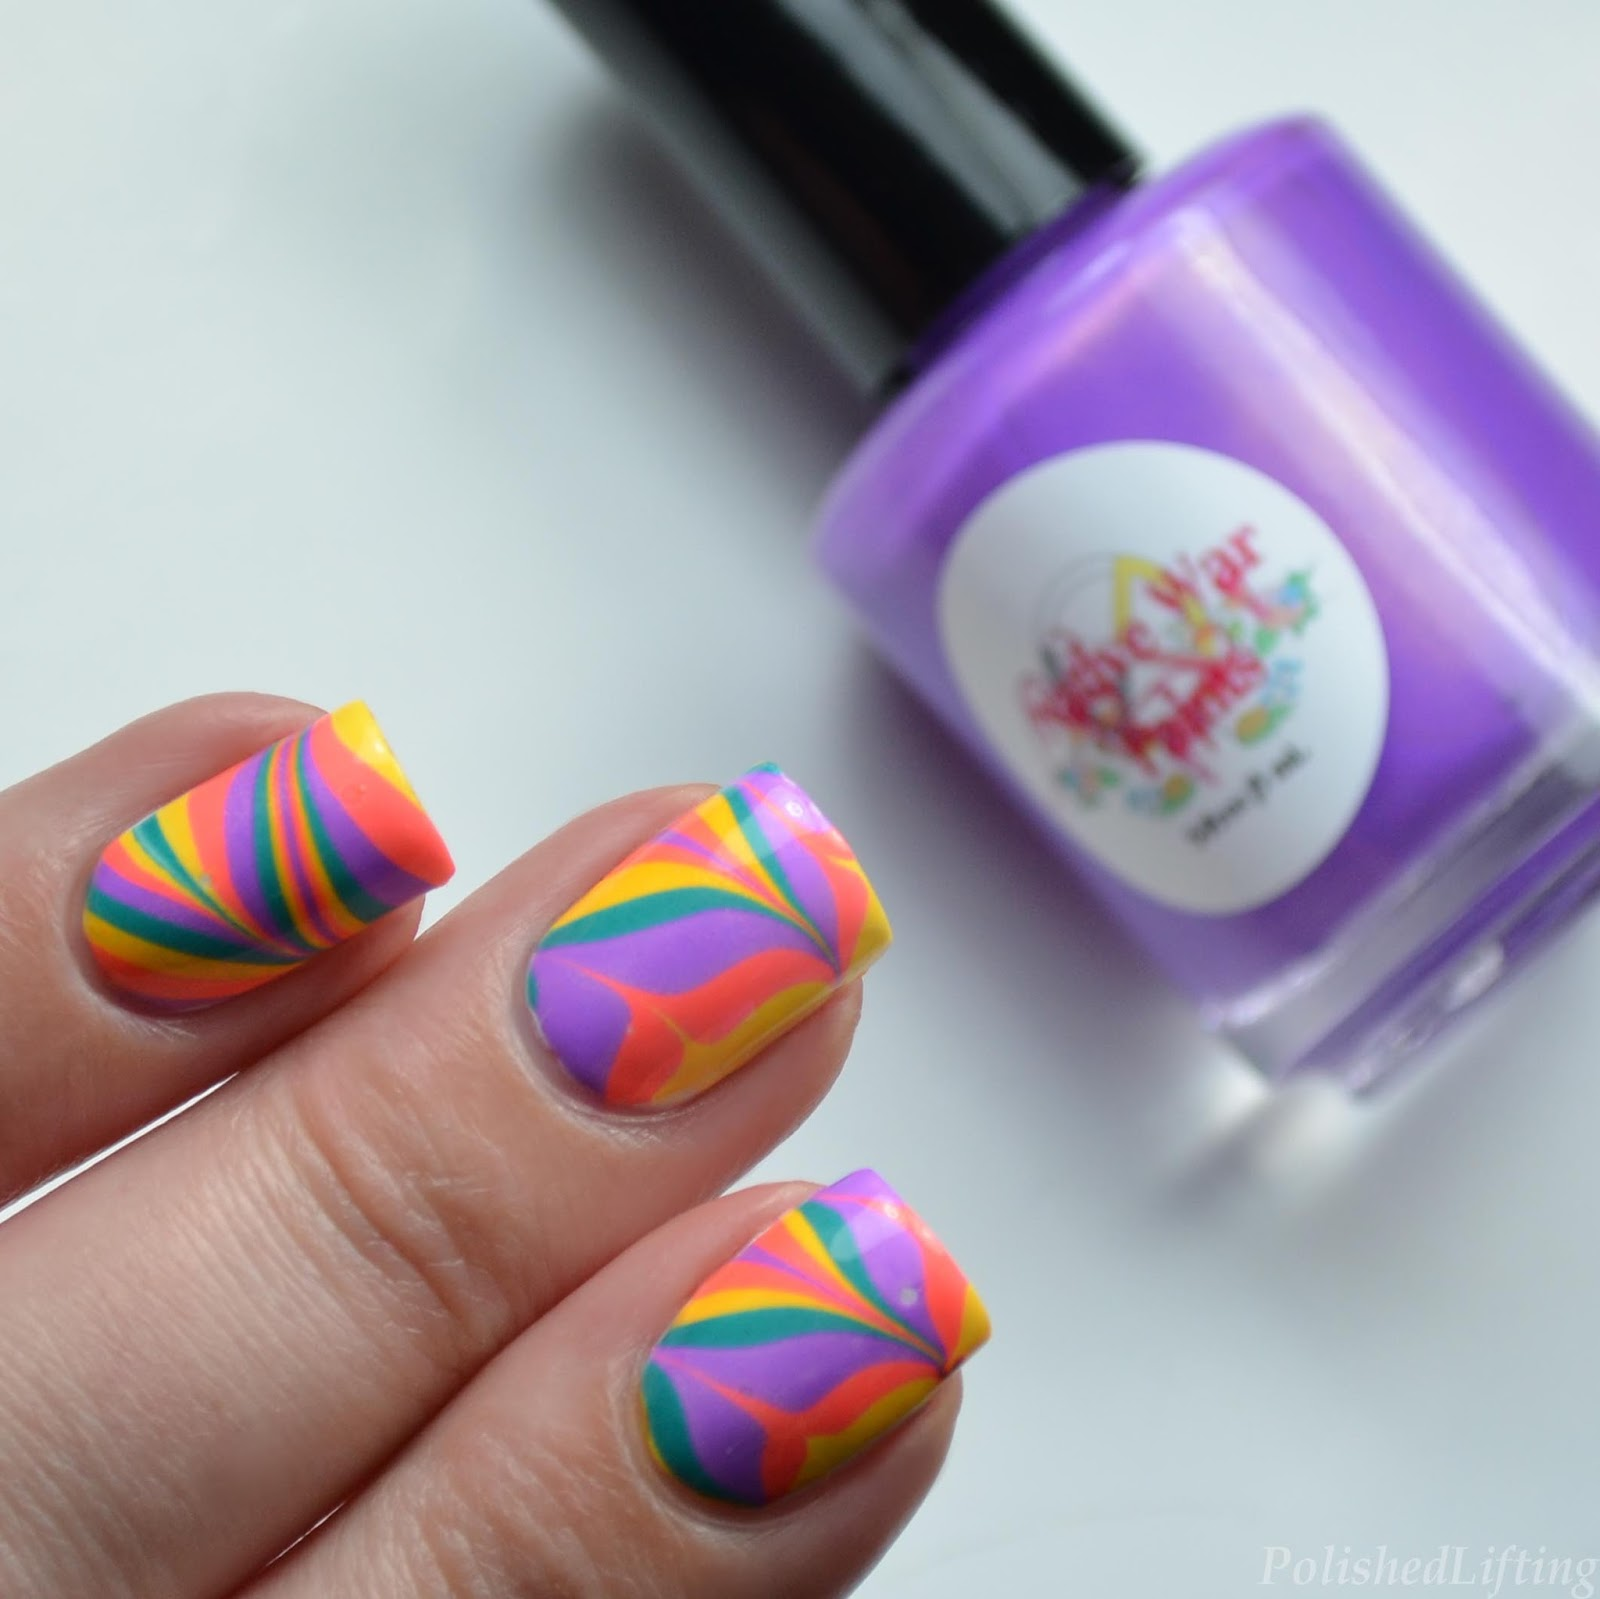 Polished Lifting: Oddball Neon Summer Water Marble featuring Native ...